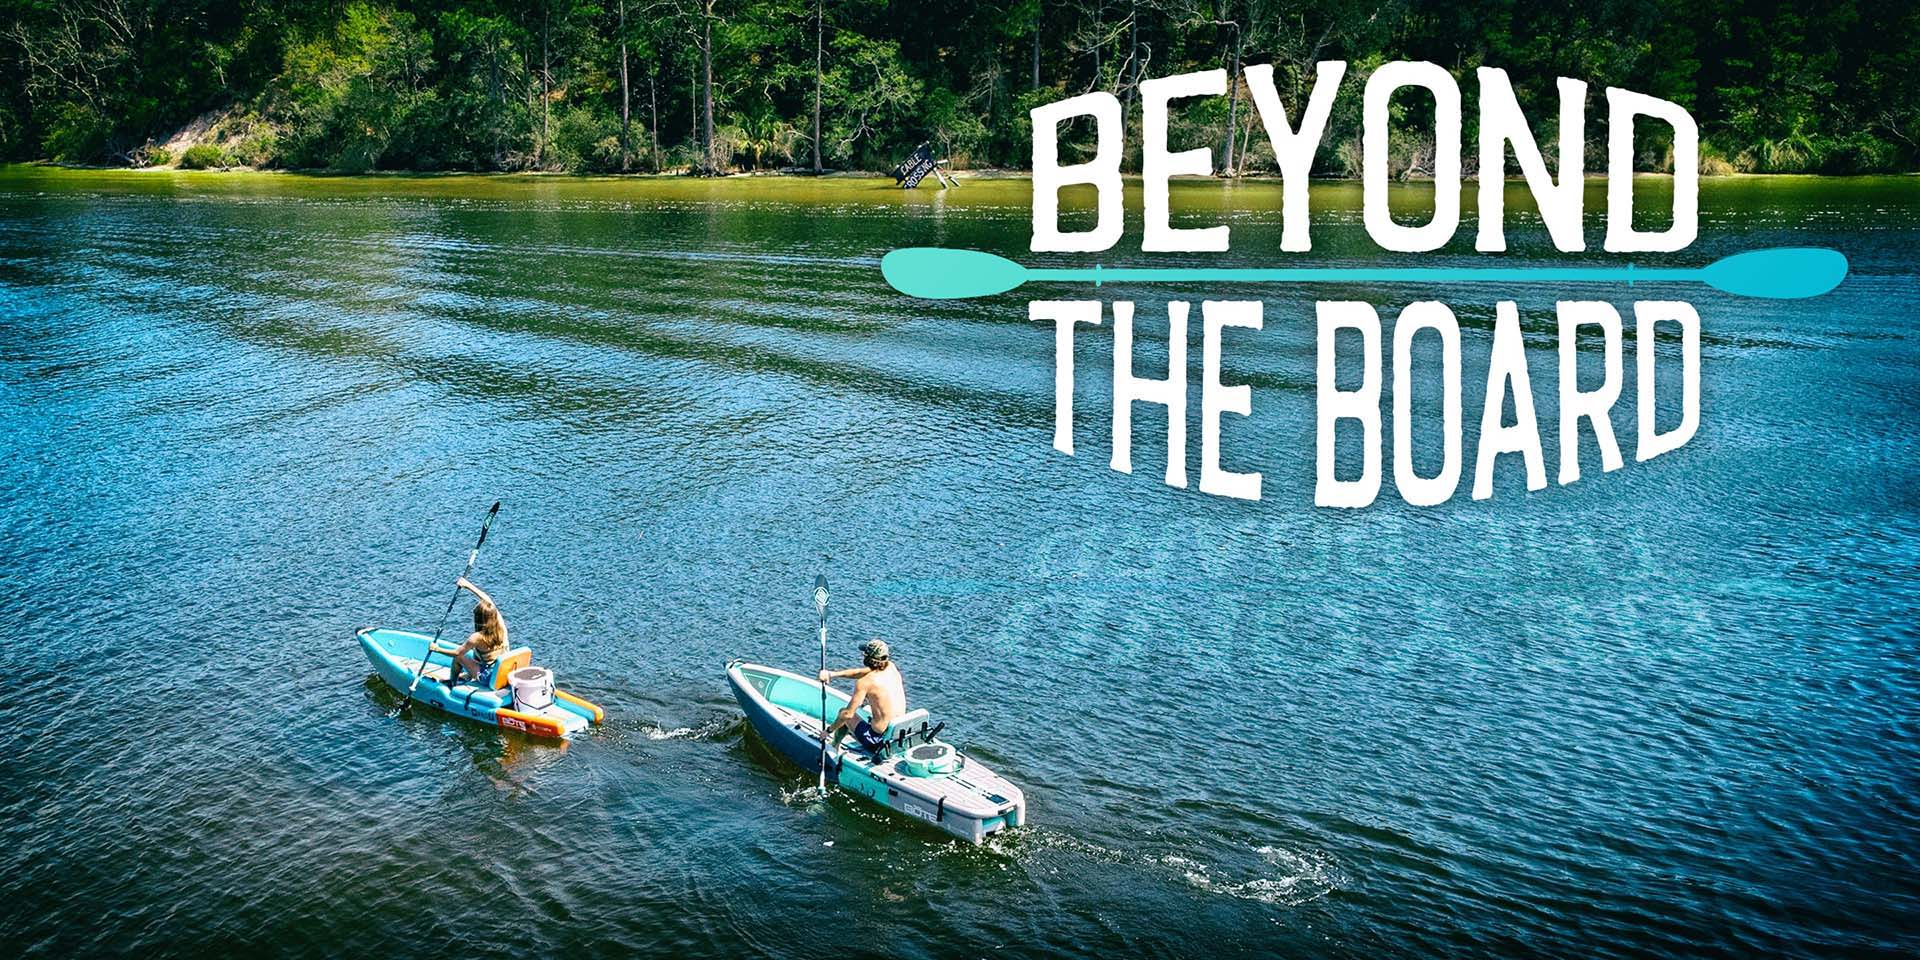 Beyond the Board – An Inflatable Kayak with the Soul of a Stand Up Paddle Board